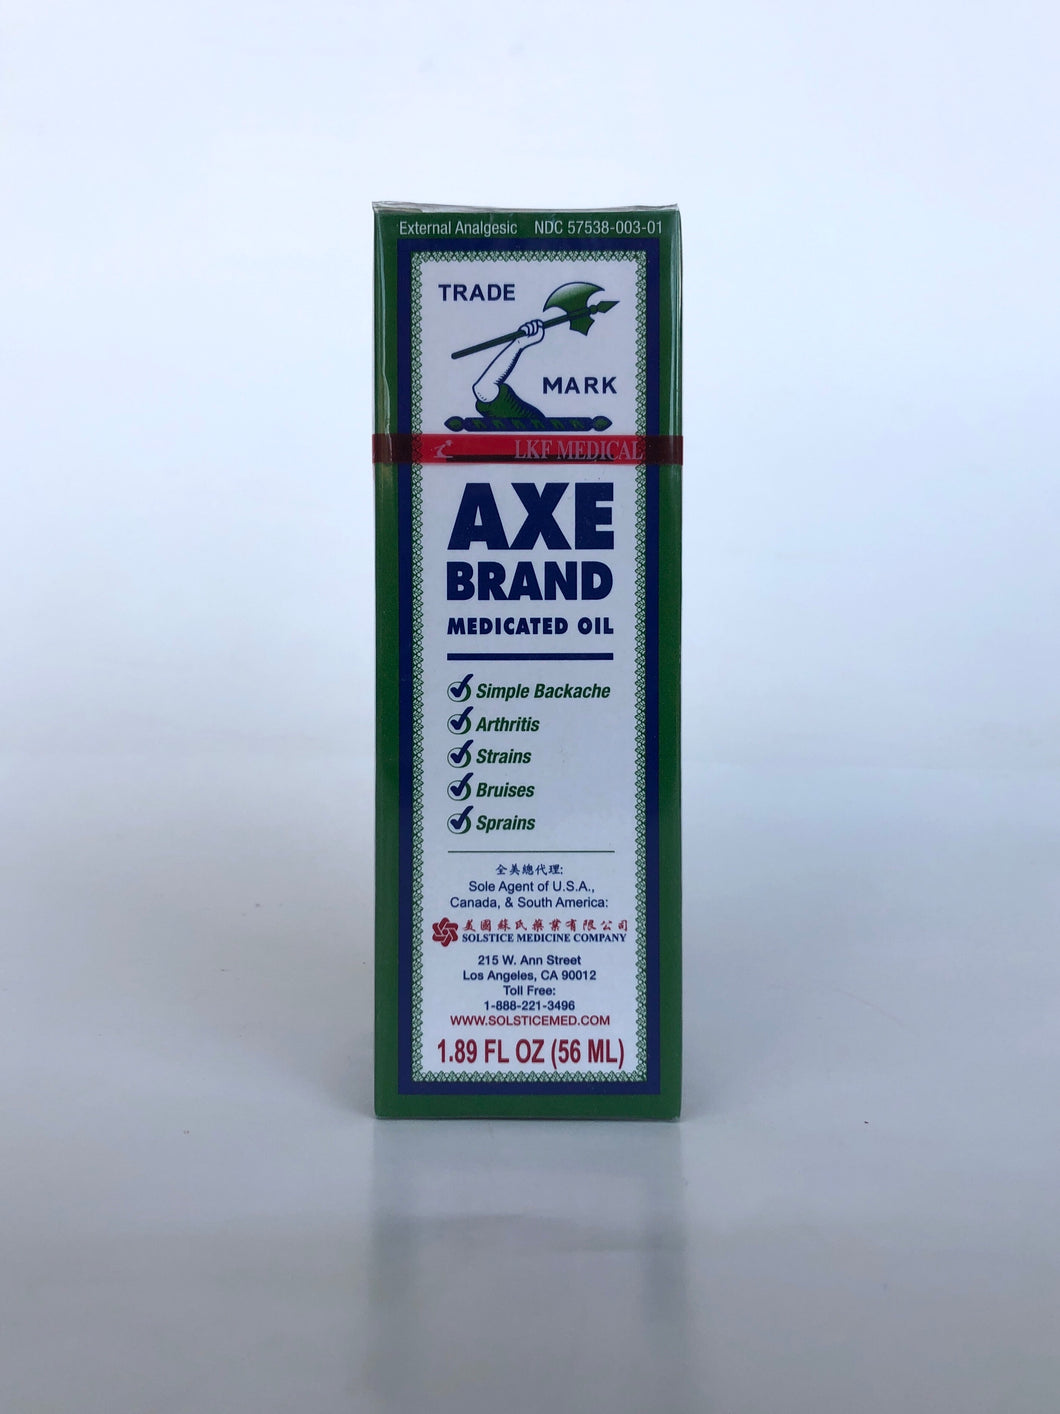 Axe Brand Medicated Oil